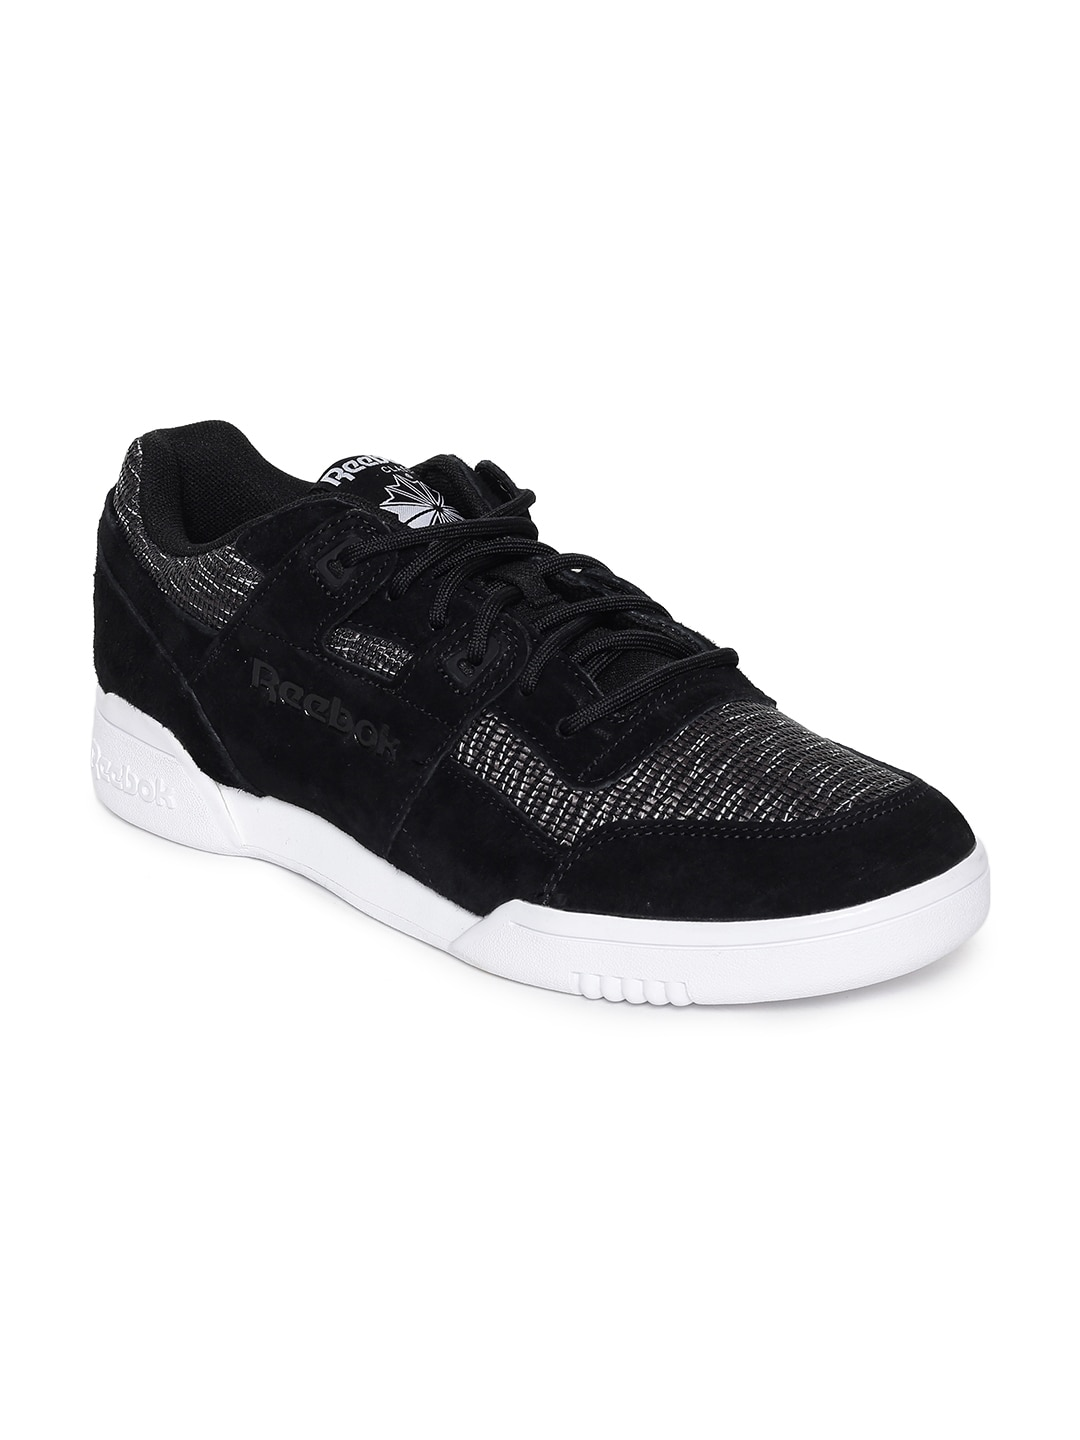 ec3e9c75fe2171 Reebok Classic Shoes - Buy Reebok Classic Shoes online in India